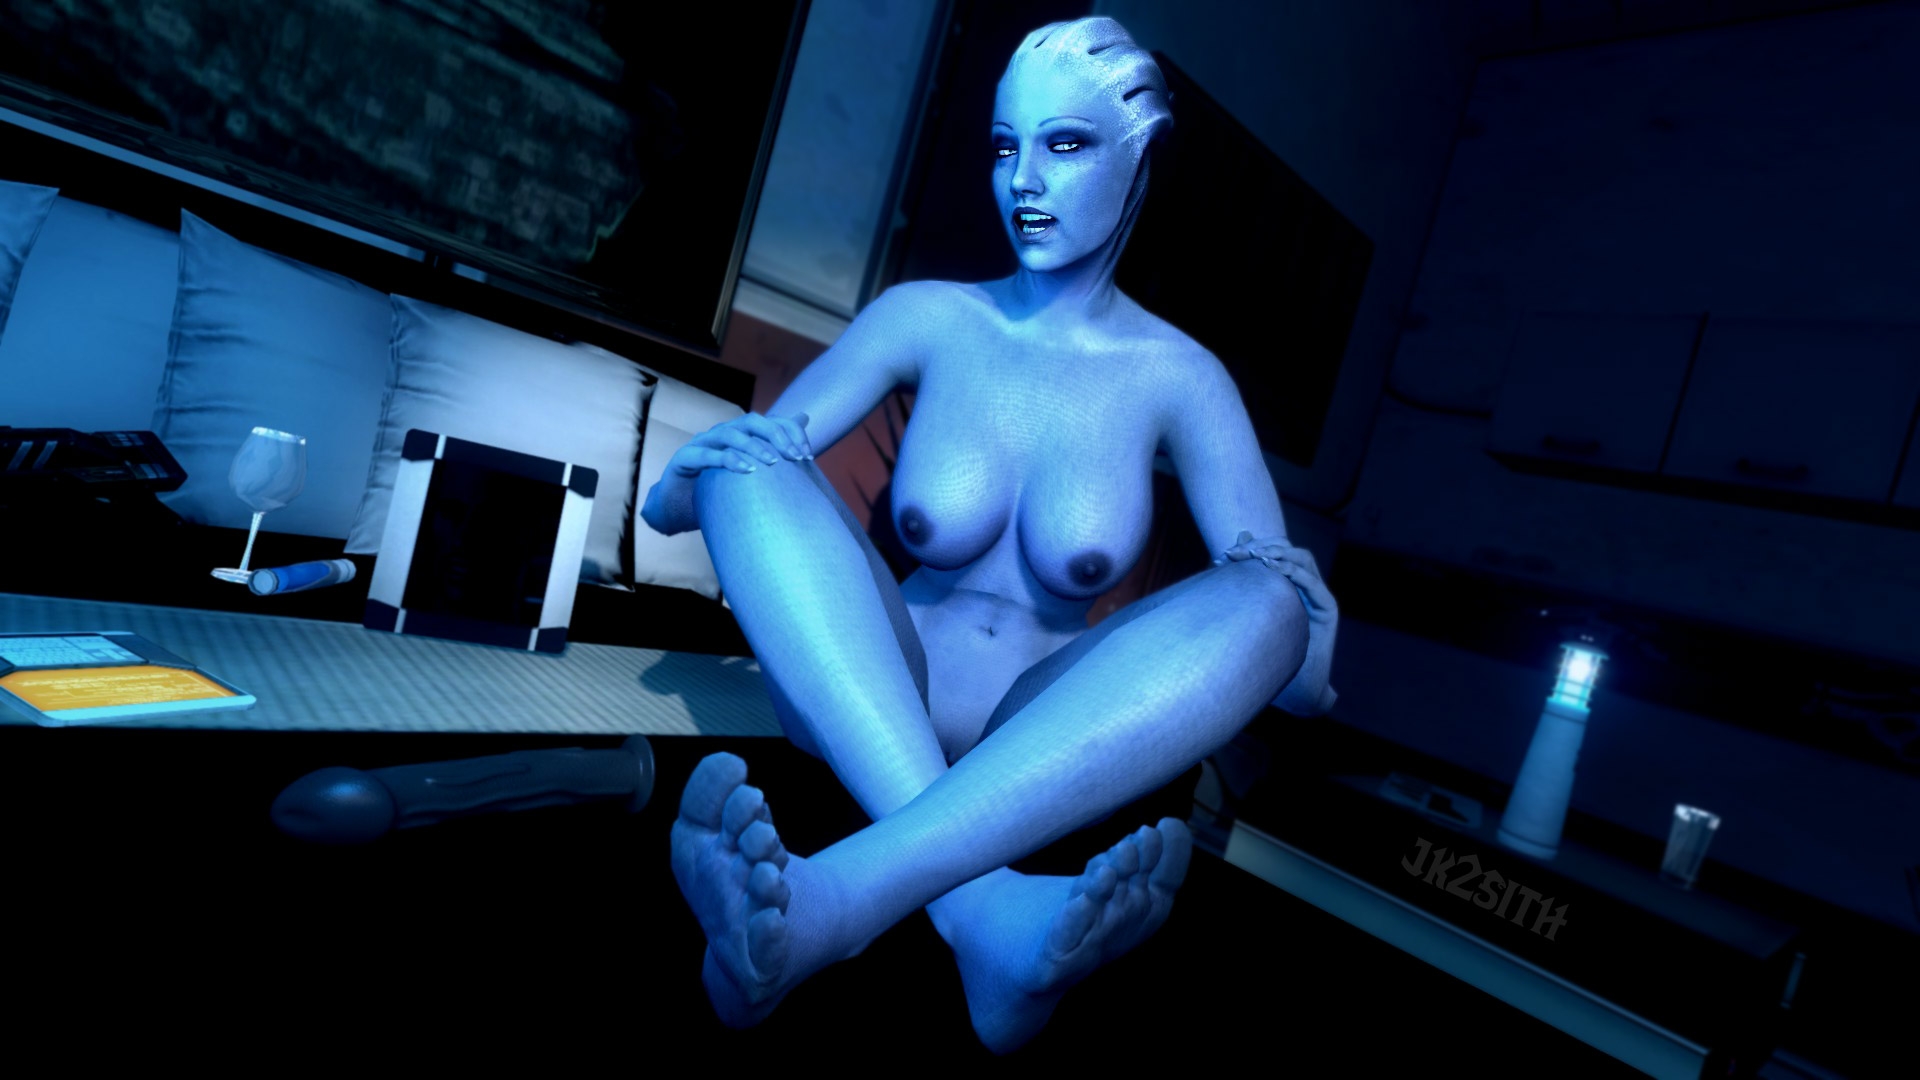 Mass effect 3d sex galleries nudes images